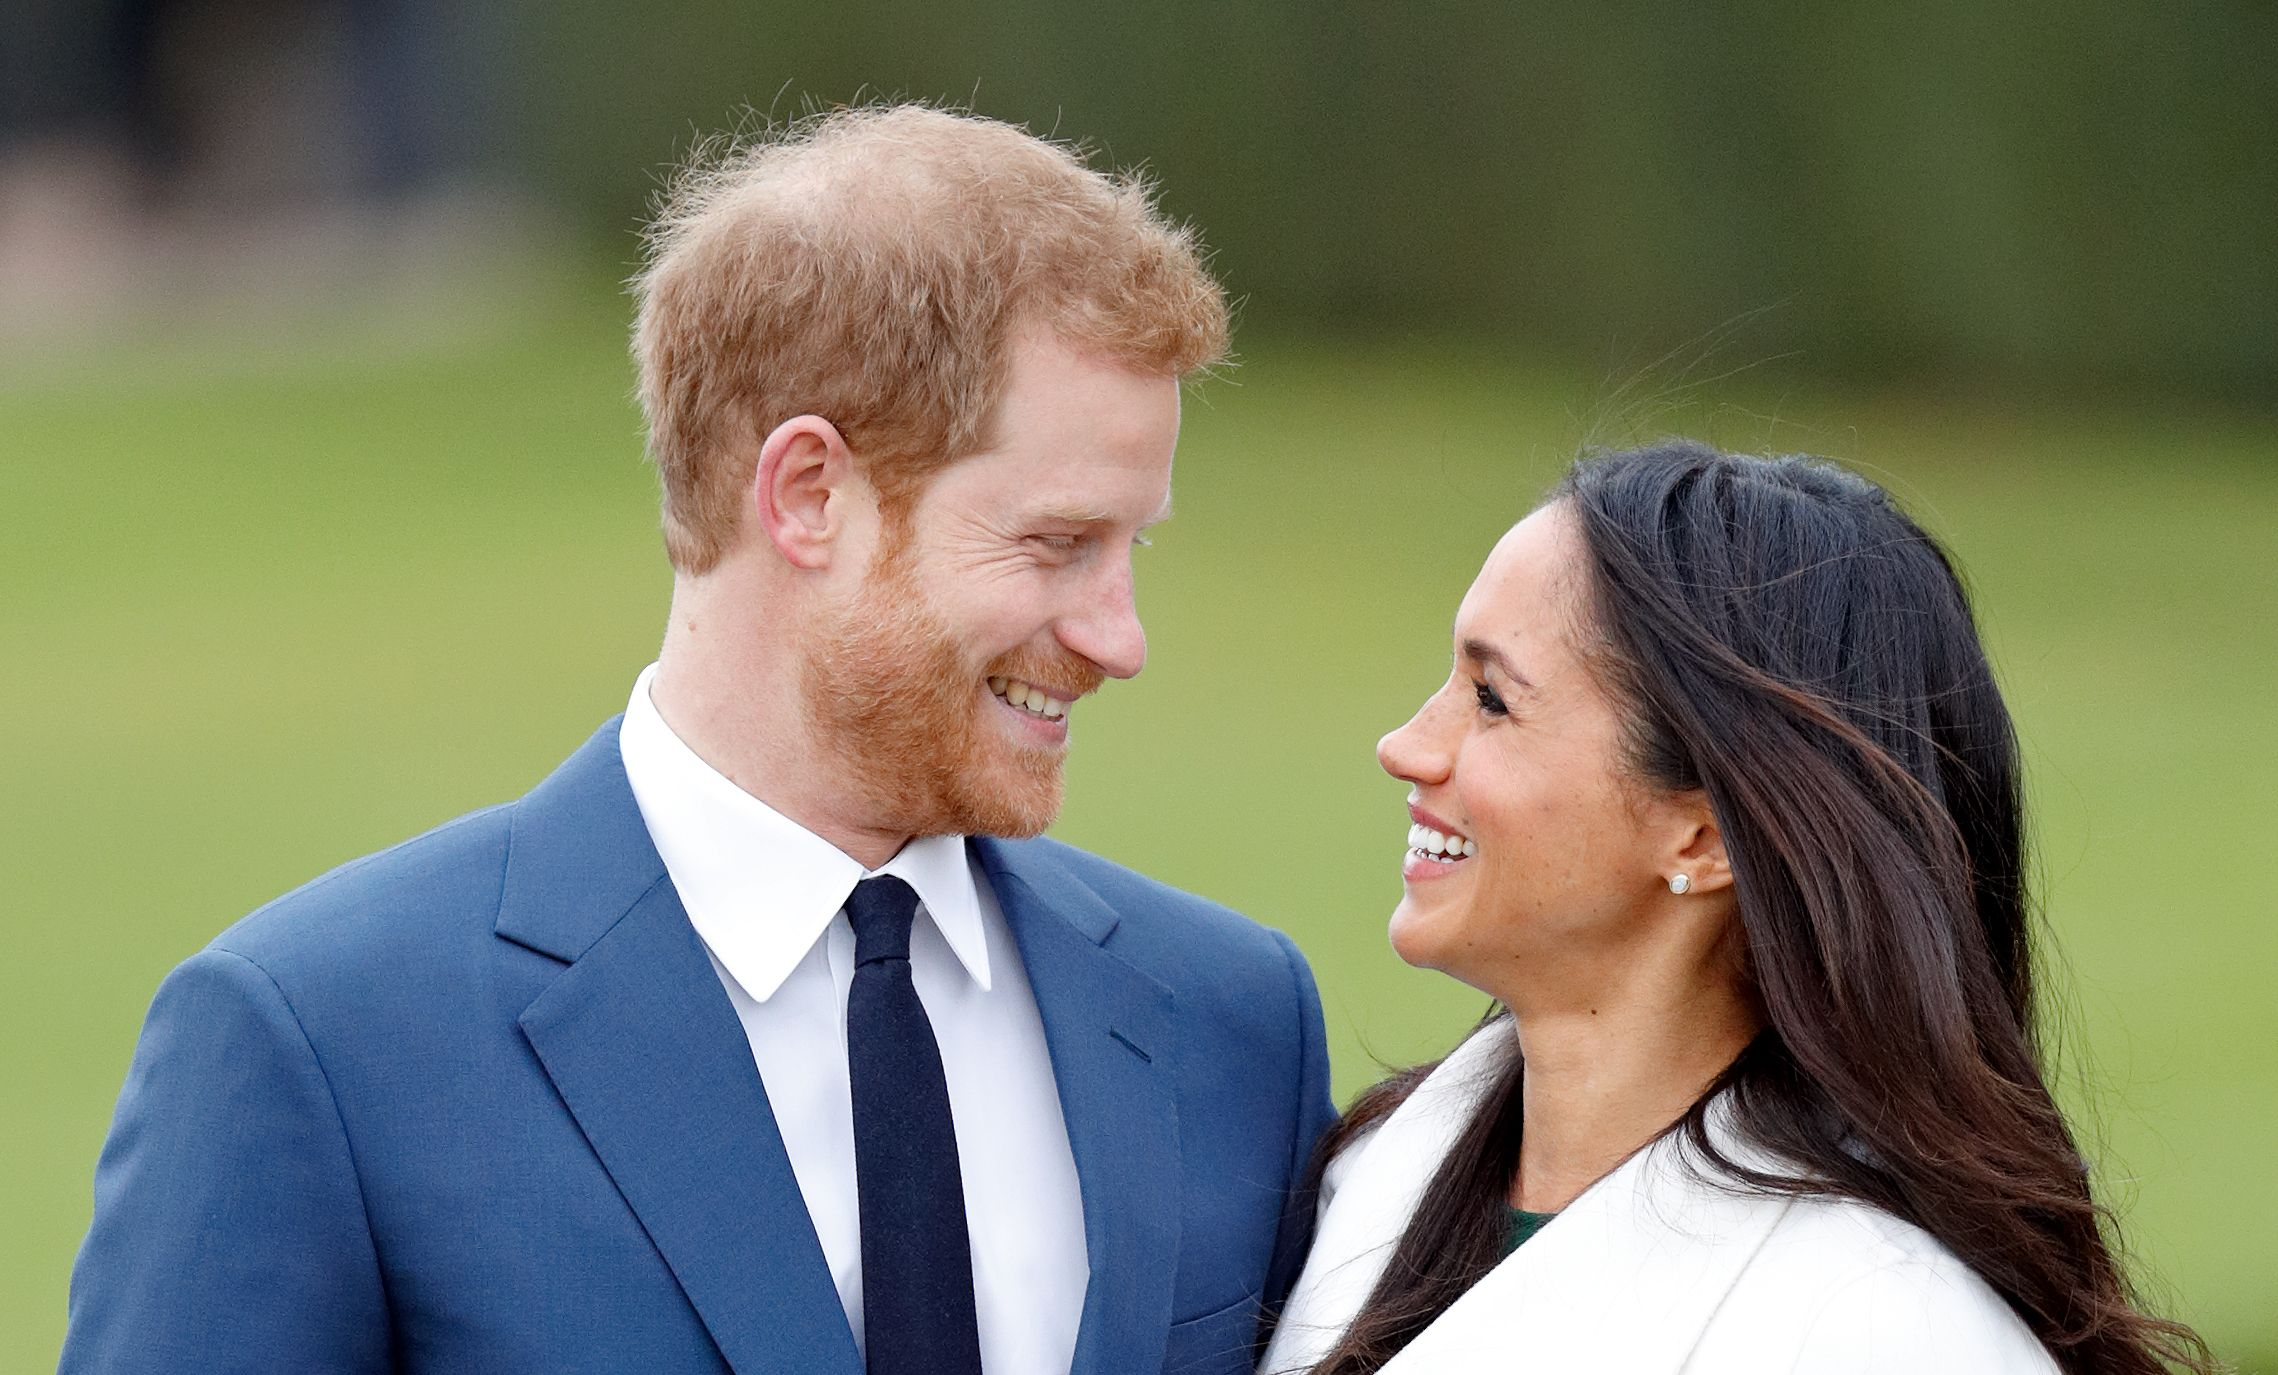 c688fe19b Everything You Need to Know About Meghan Markle and Prince Harry's Baby